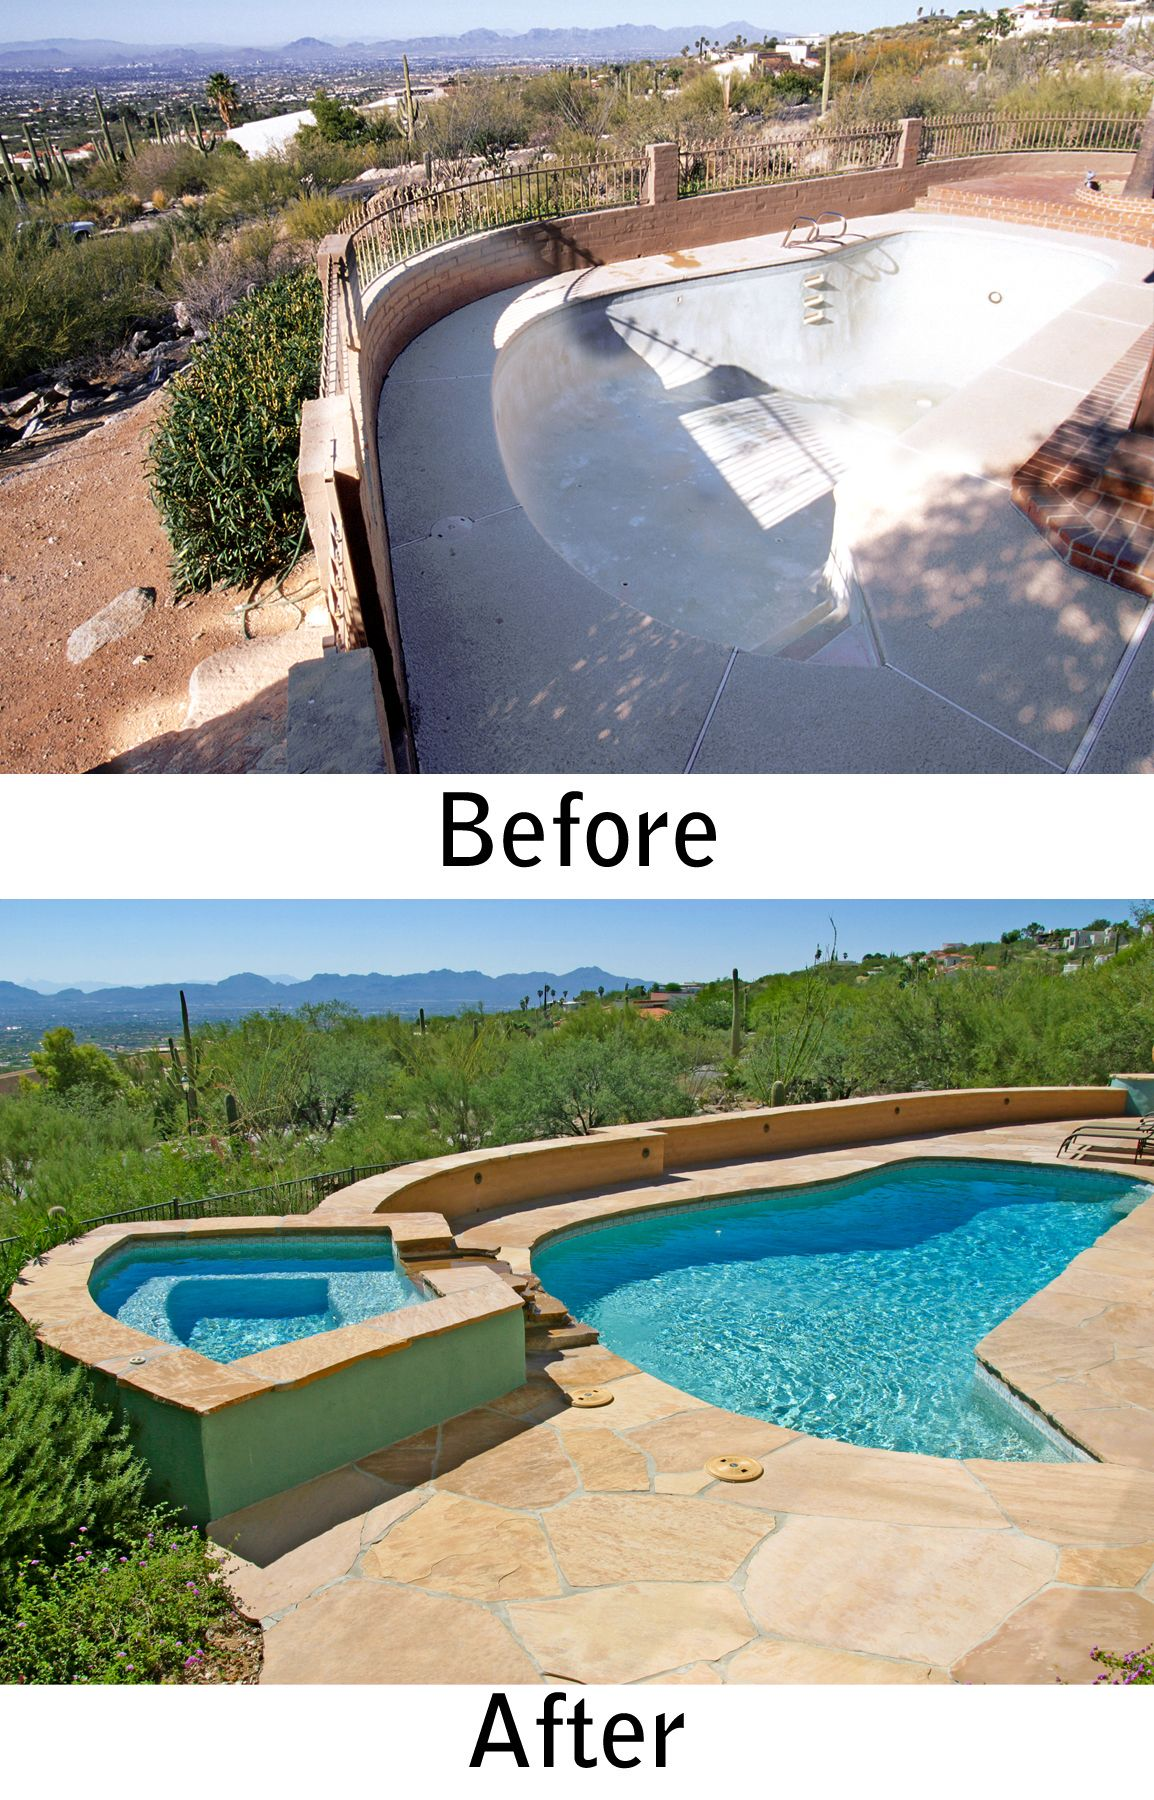 Delightful Tucson Pool Renovation And Spa Addition By Patio Pools And Spas.